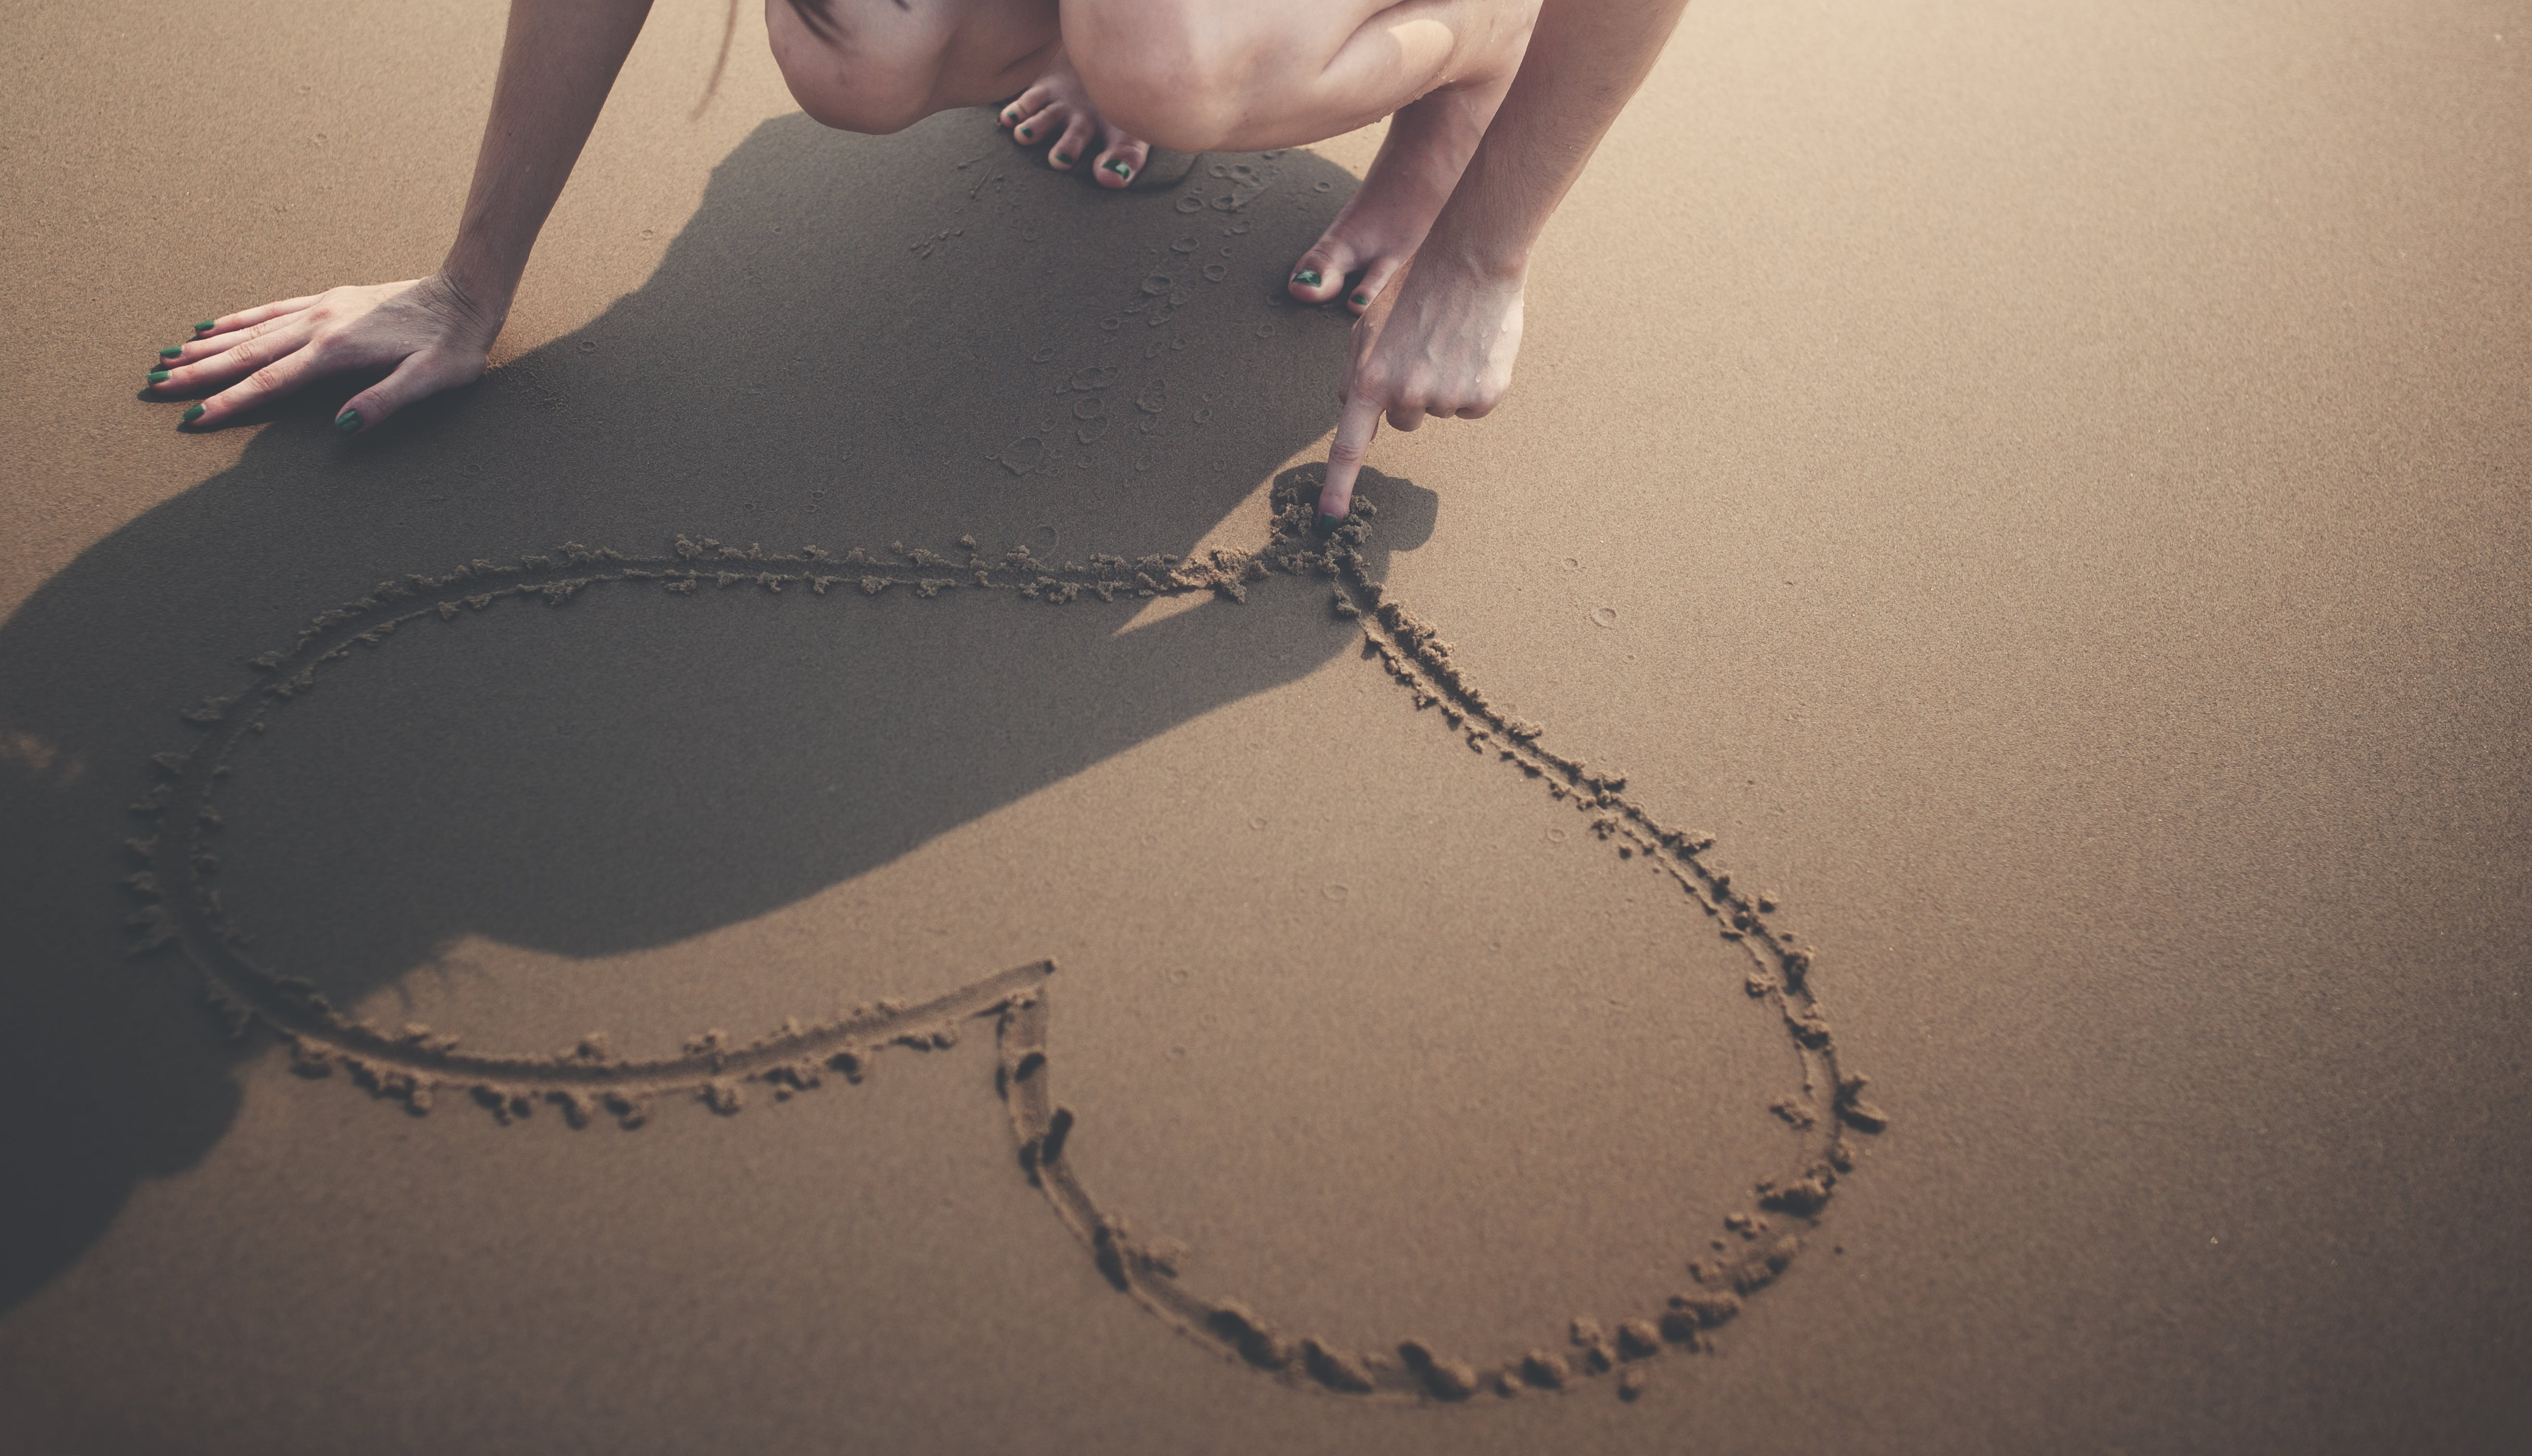 Woman Draws Heart on Sand